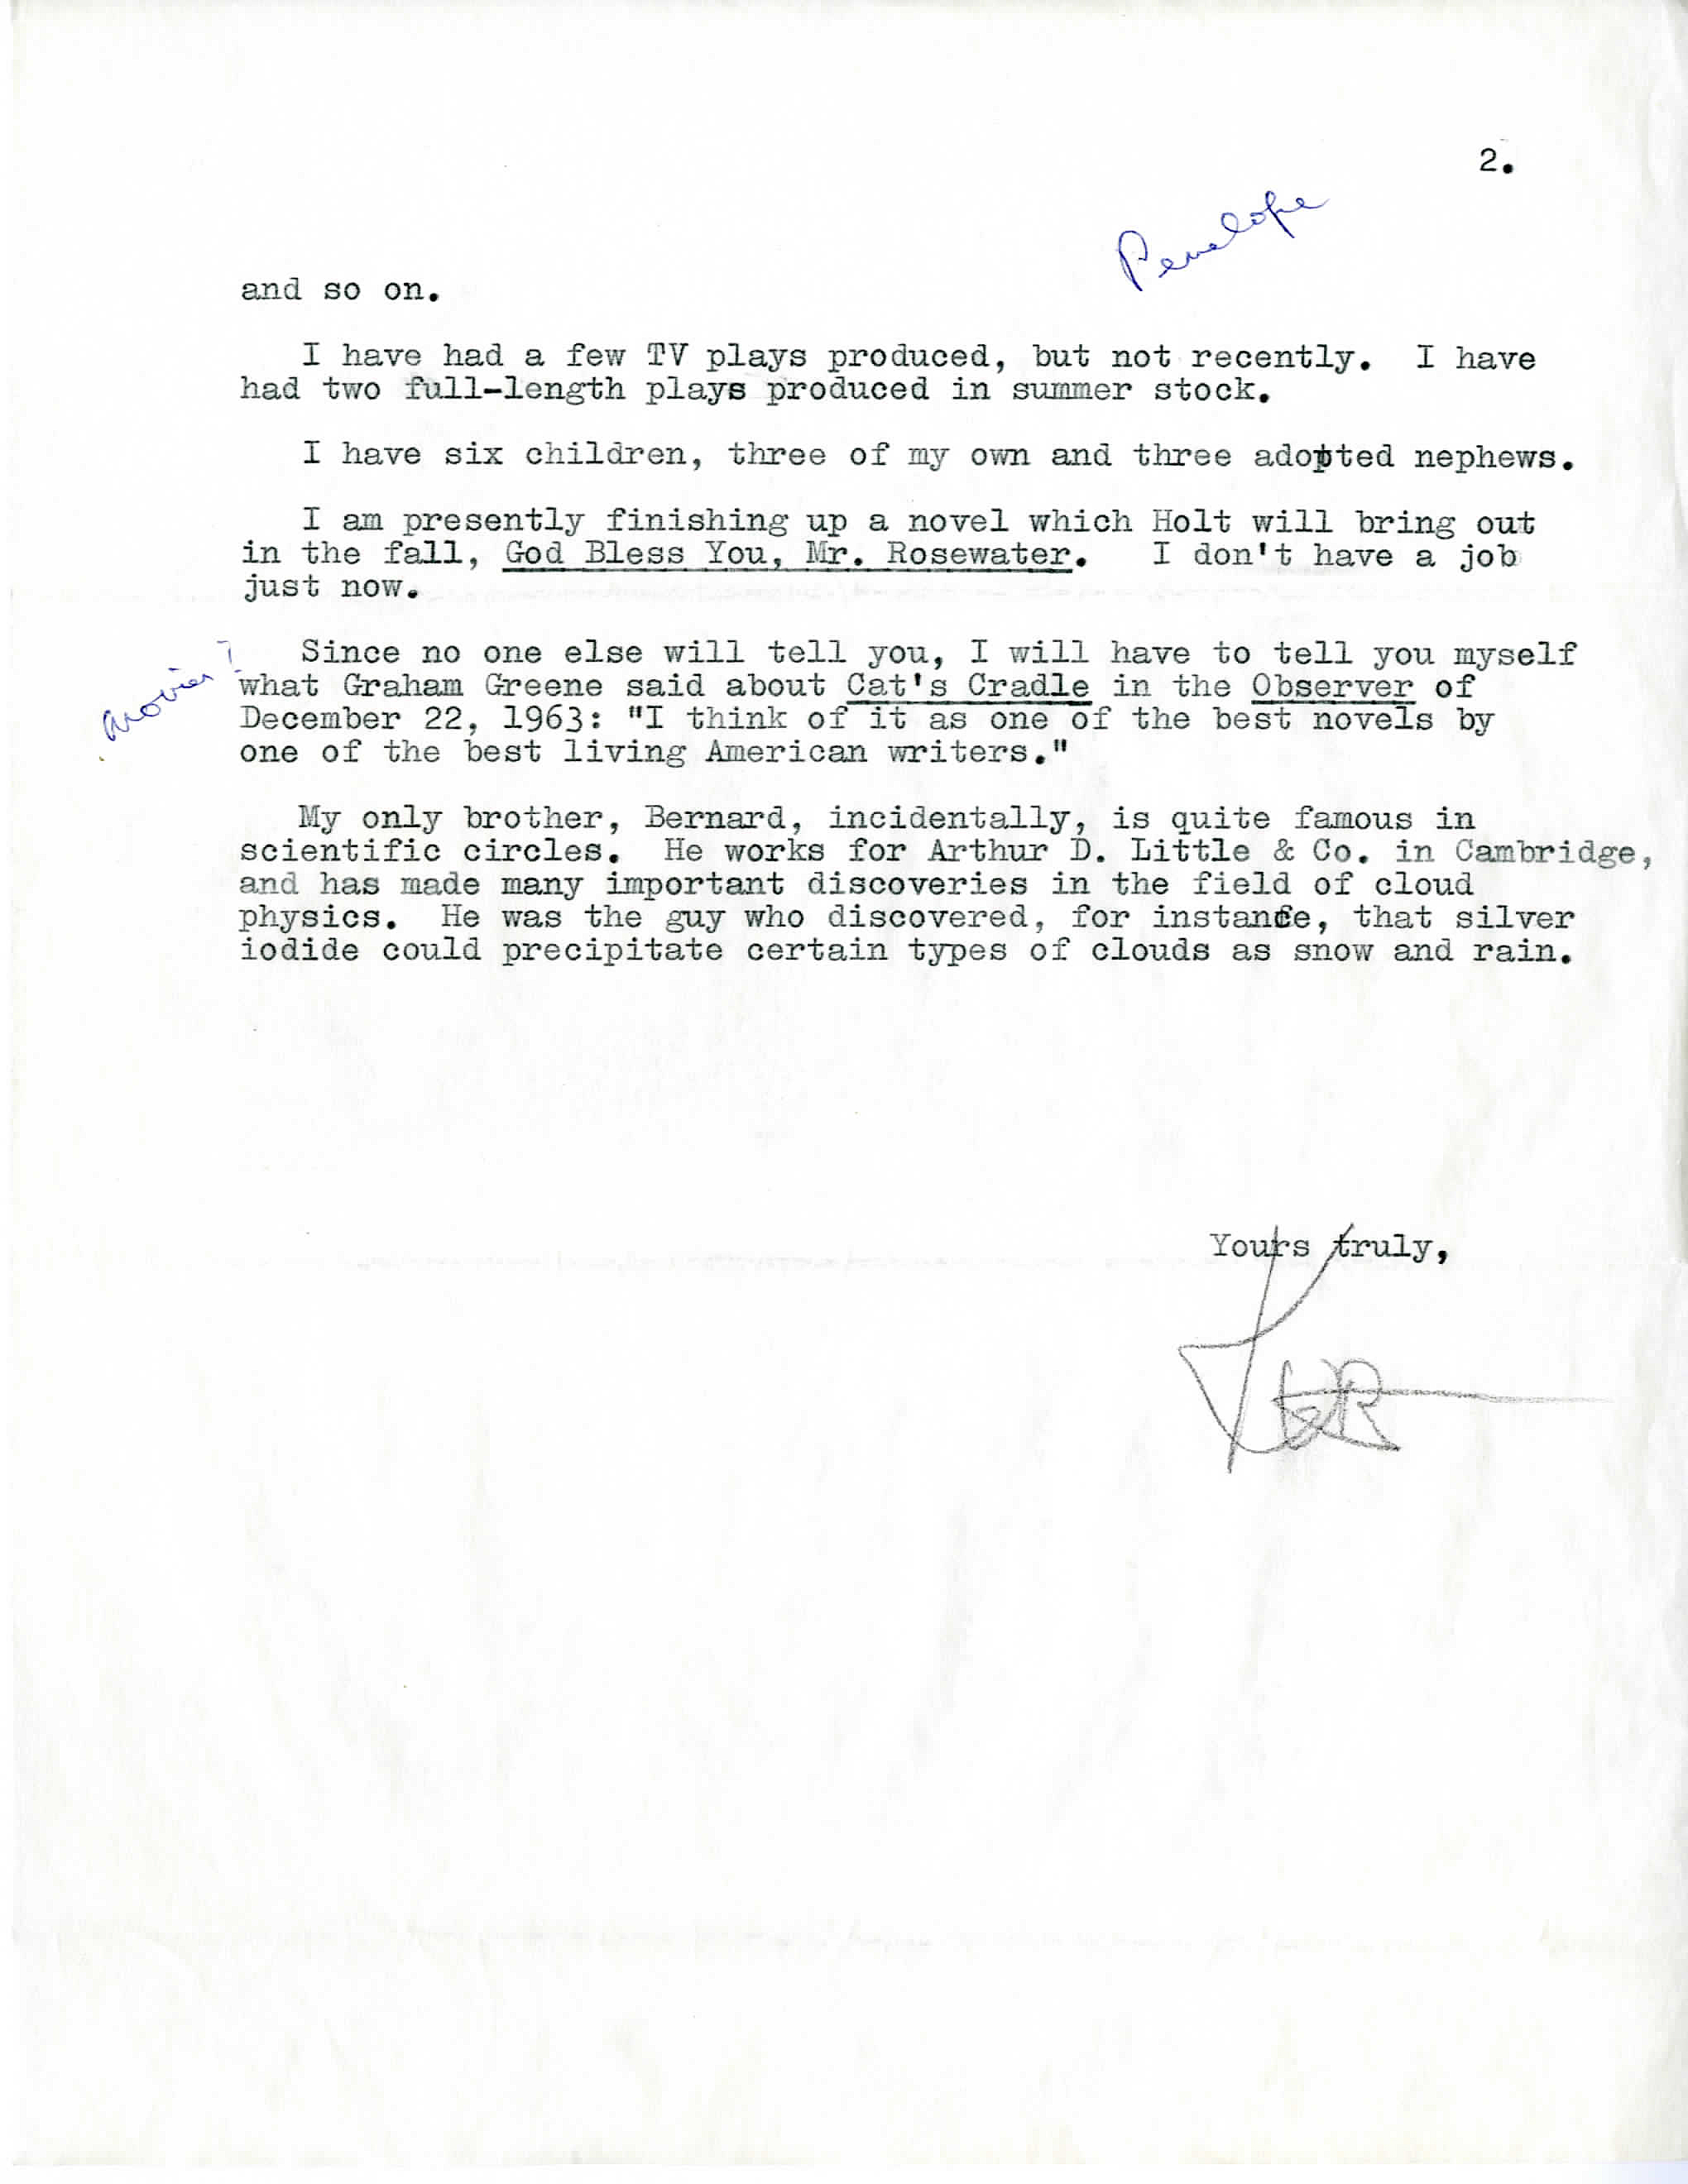 Sincerely Yours – Letters from the Archives: Kurt Vonnegut, Jr